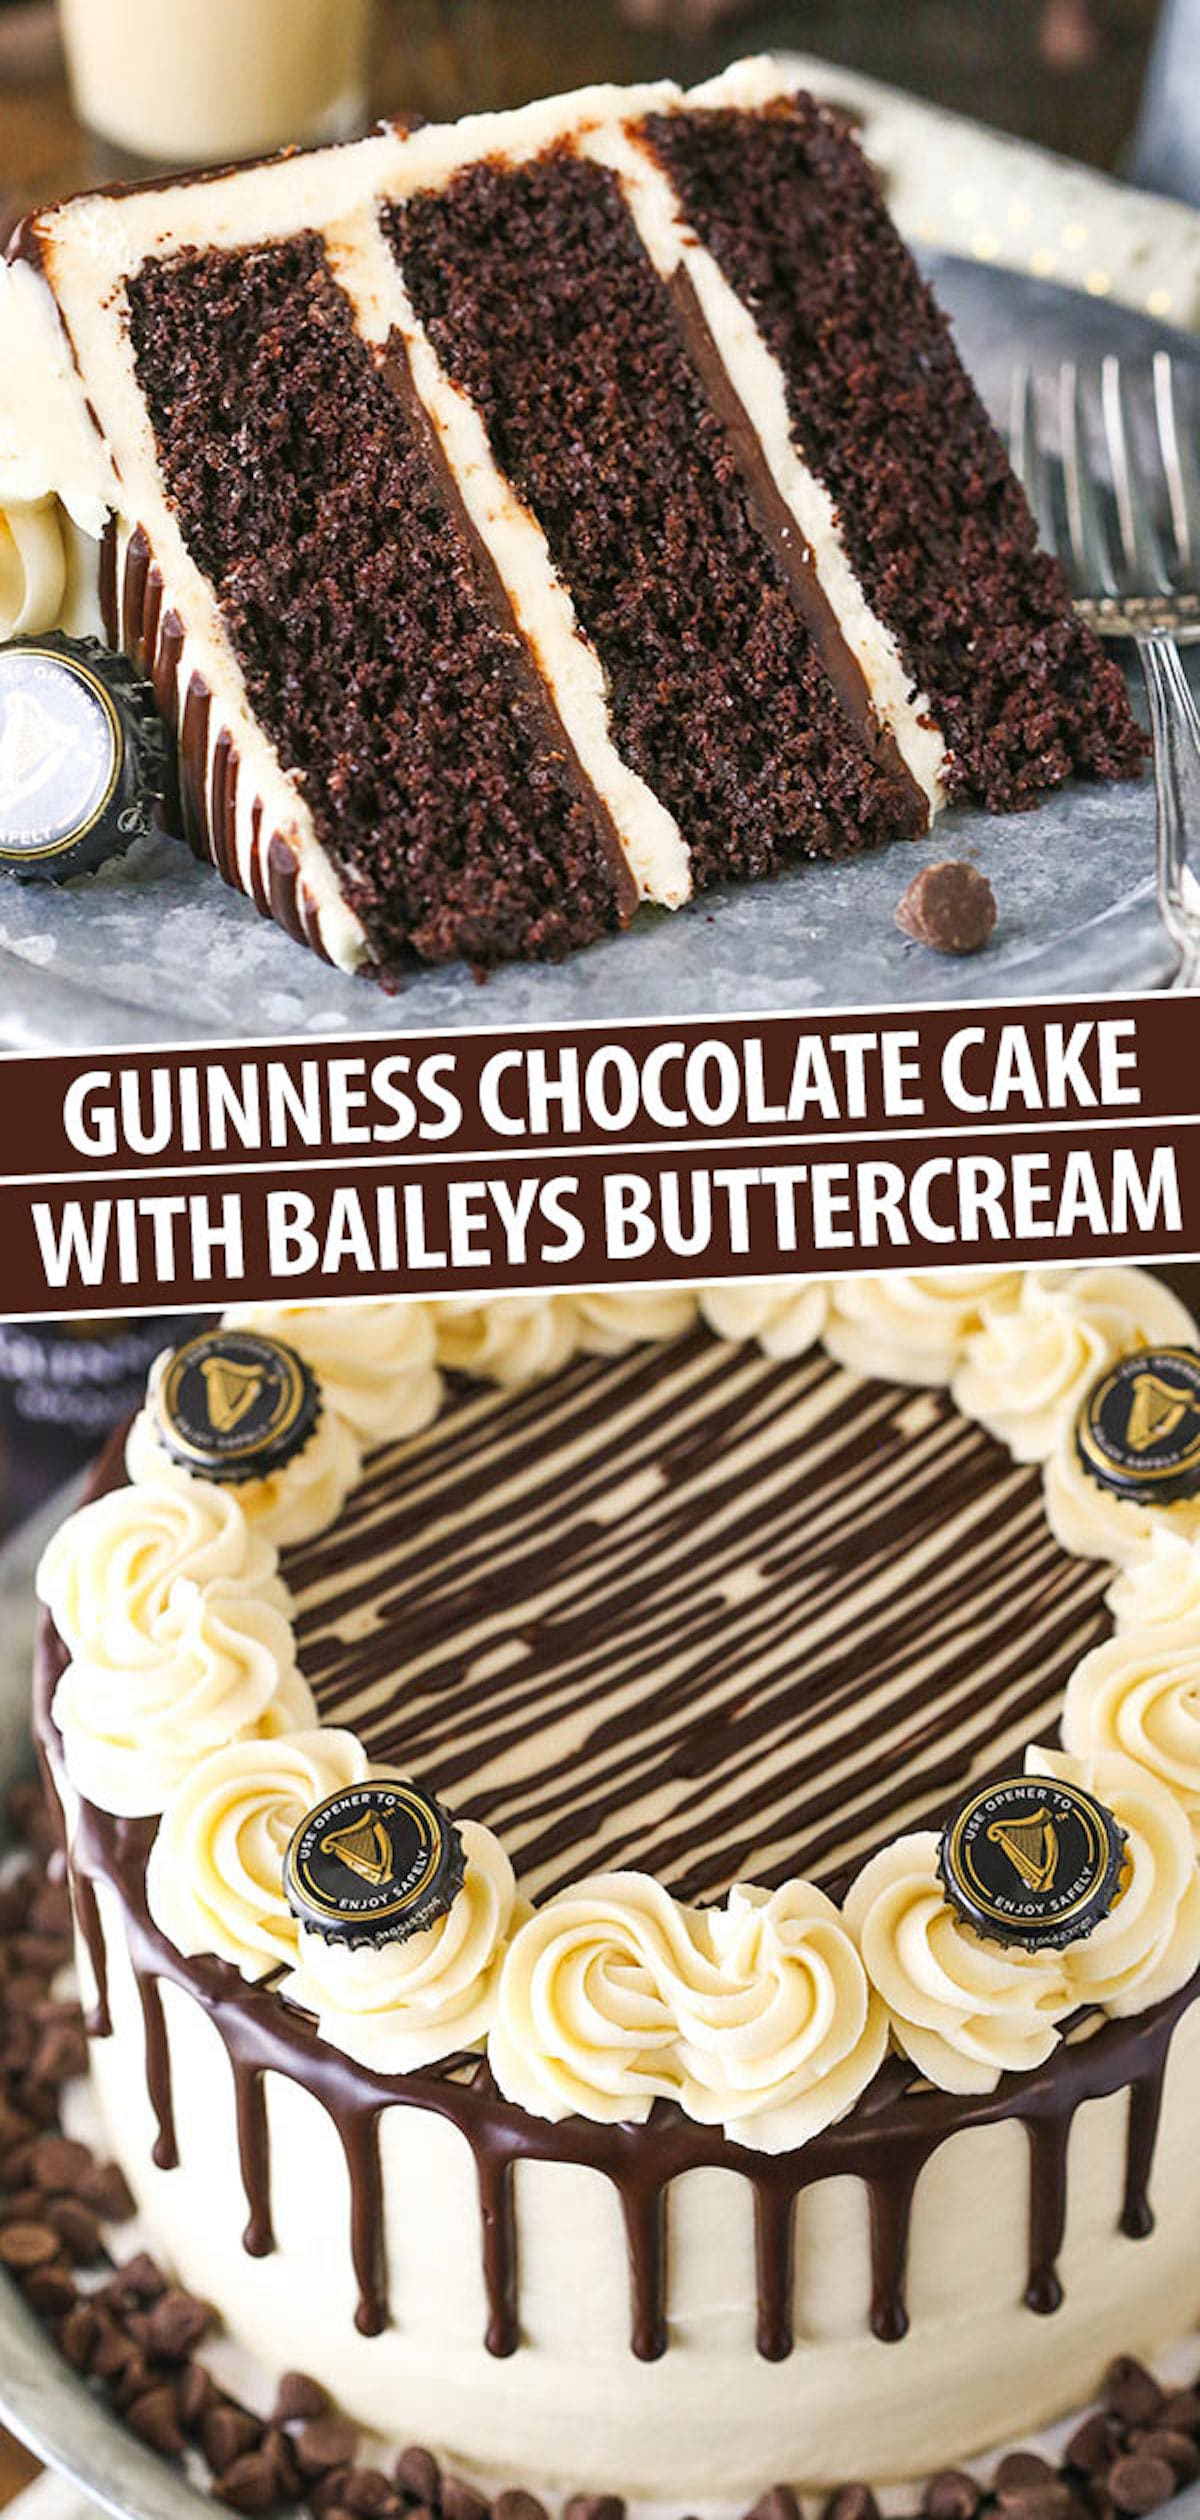 A Collage of Two Images of Guinness Cake Showing the Full Cake and a Single Slice